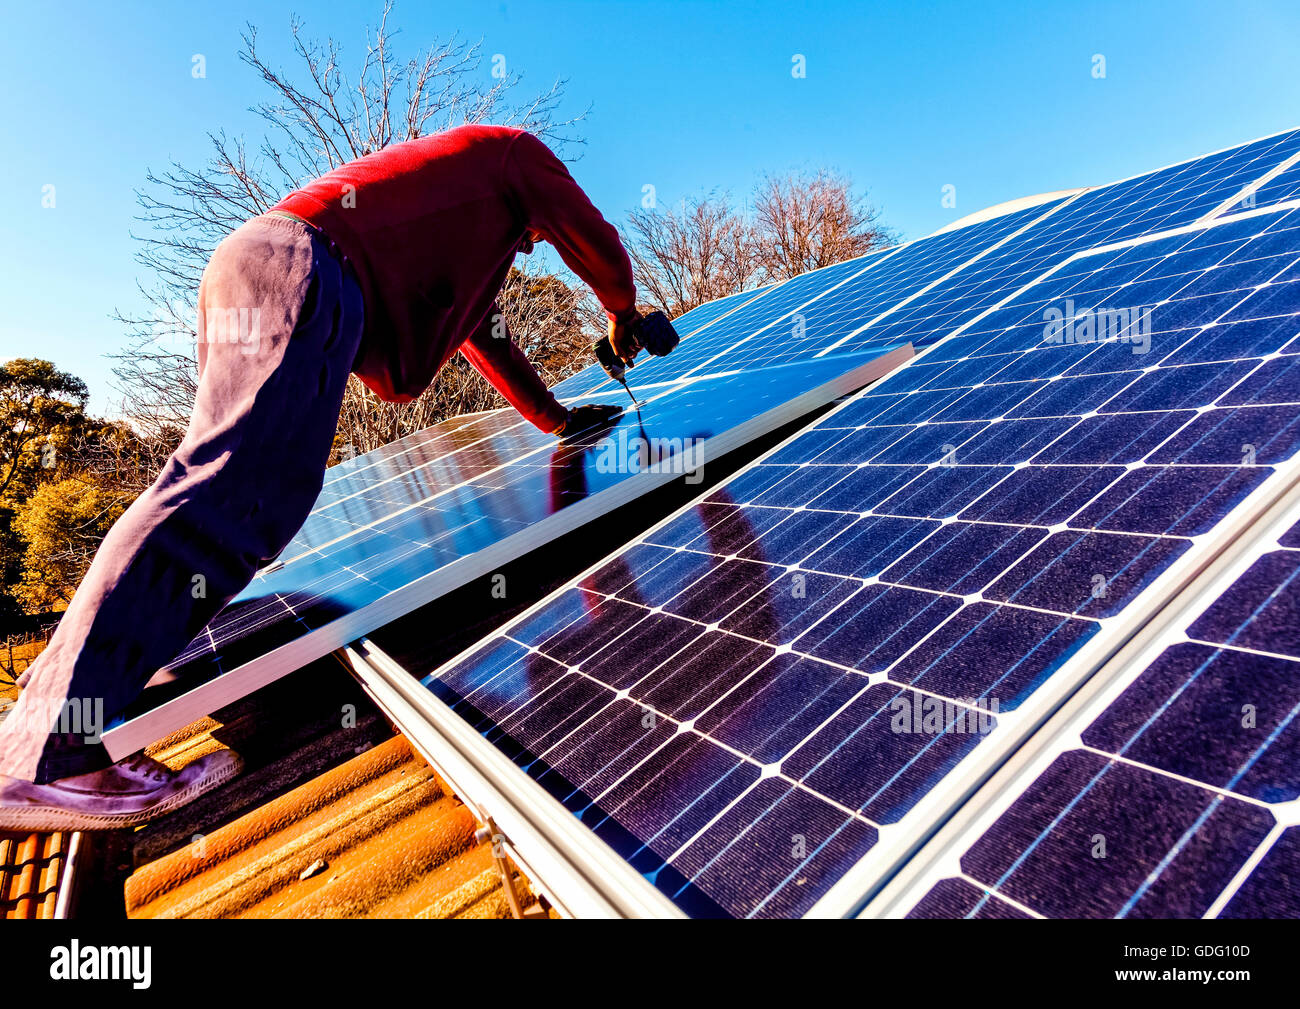 Workman installing solar panels on house roof - Stock Image